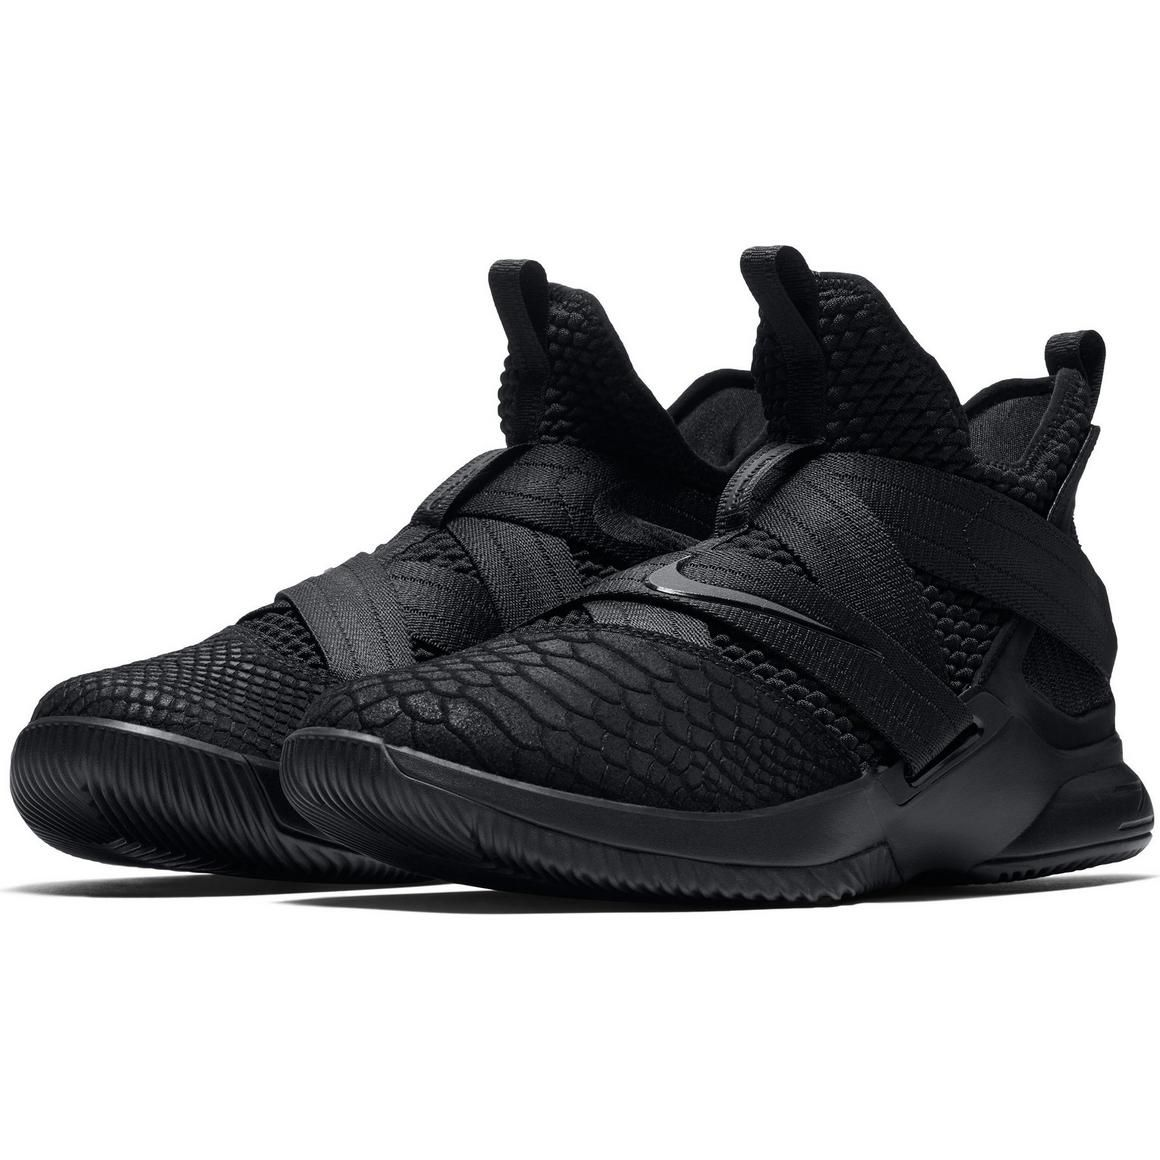 best sneakers 732a6 2745c Nike LeBron Soldier XII SFG